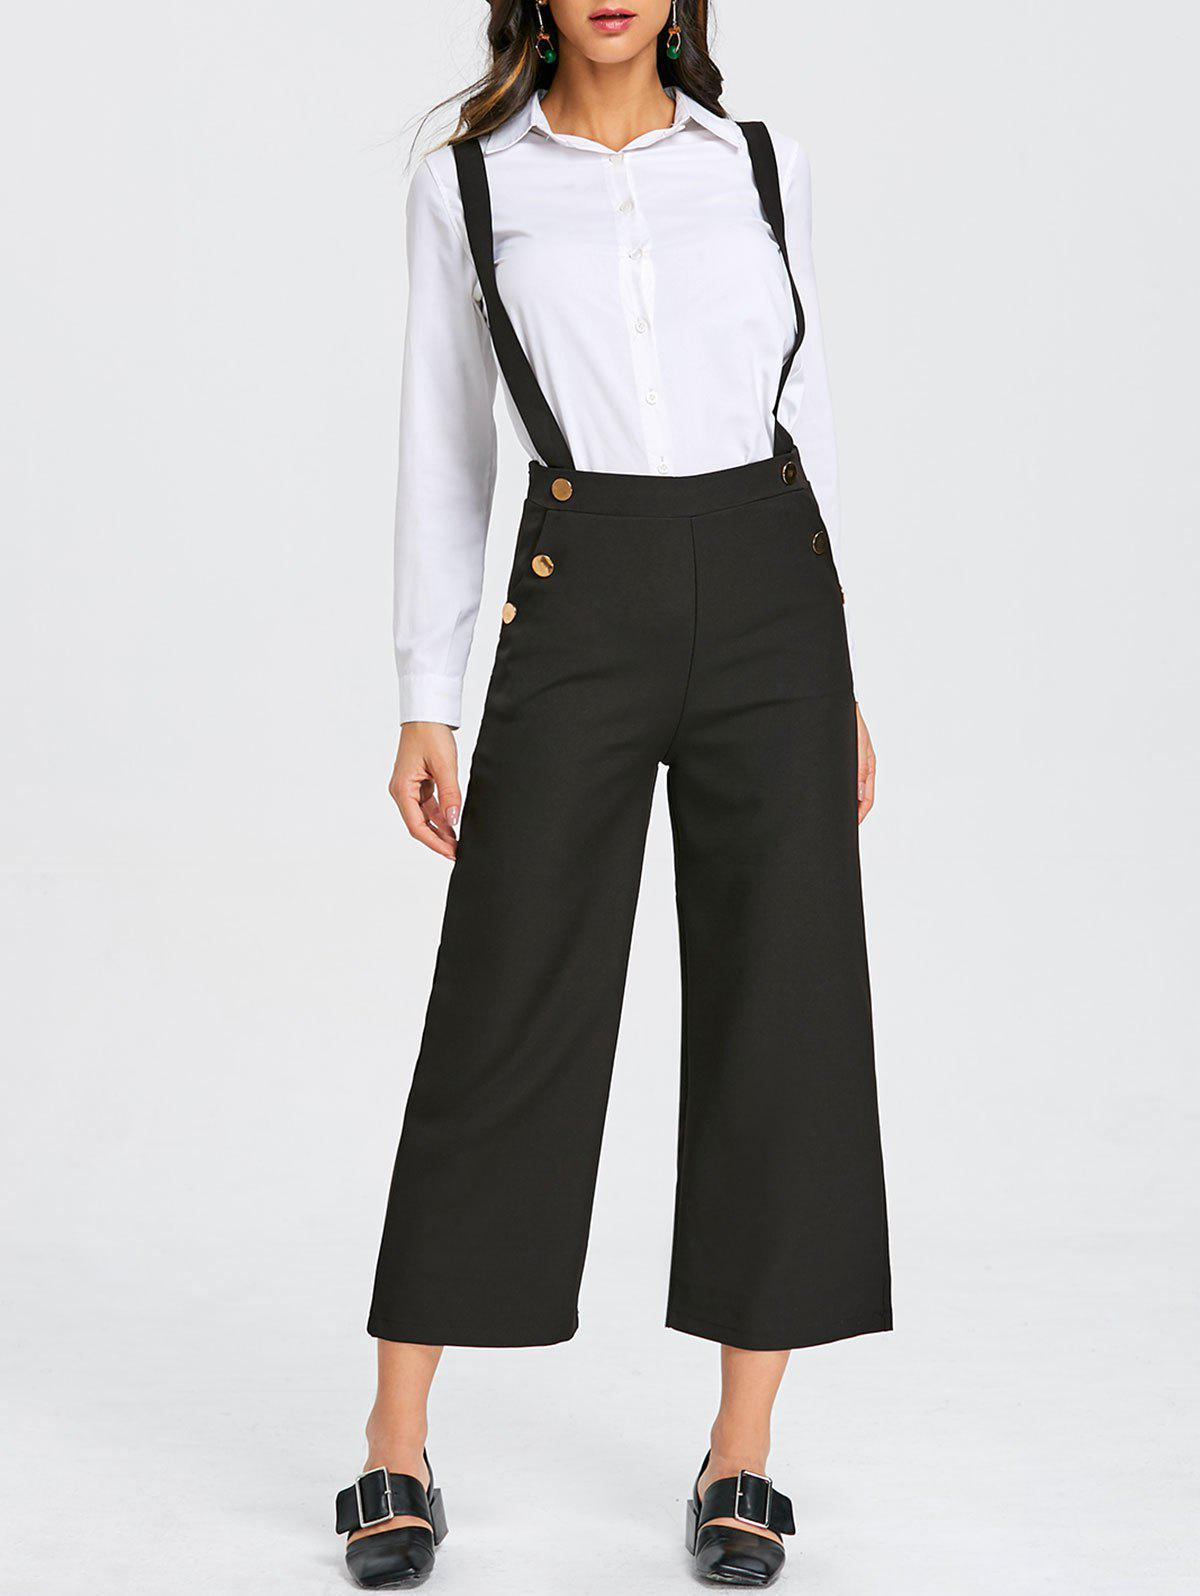 Trendy Criss Cross Ninth Wide Leg Suspender Pants